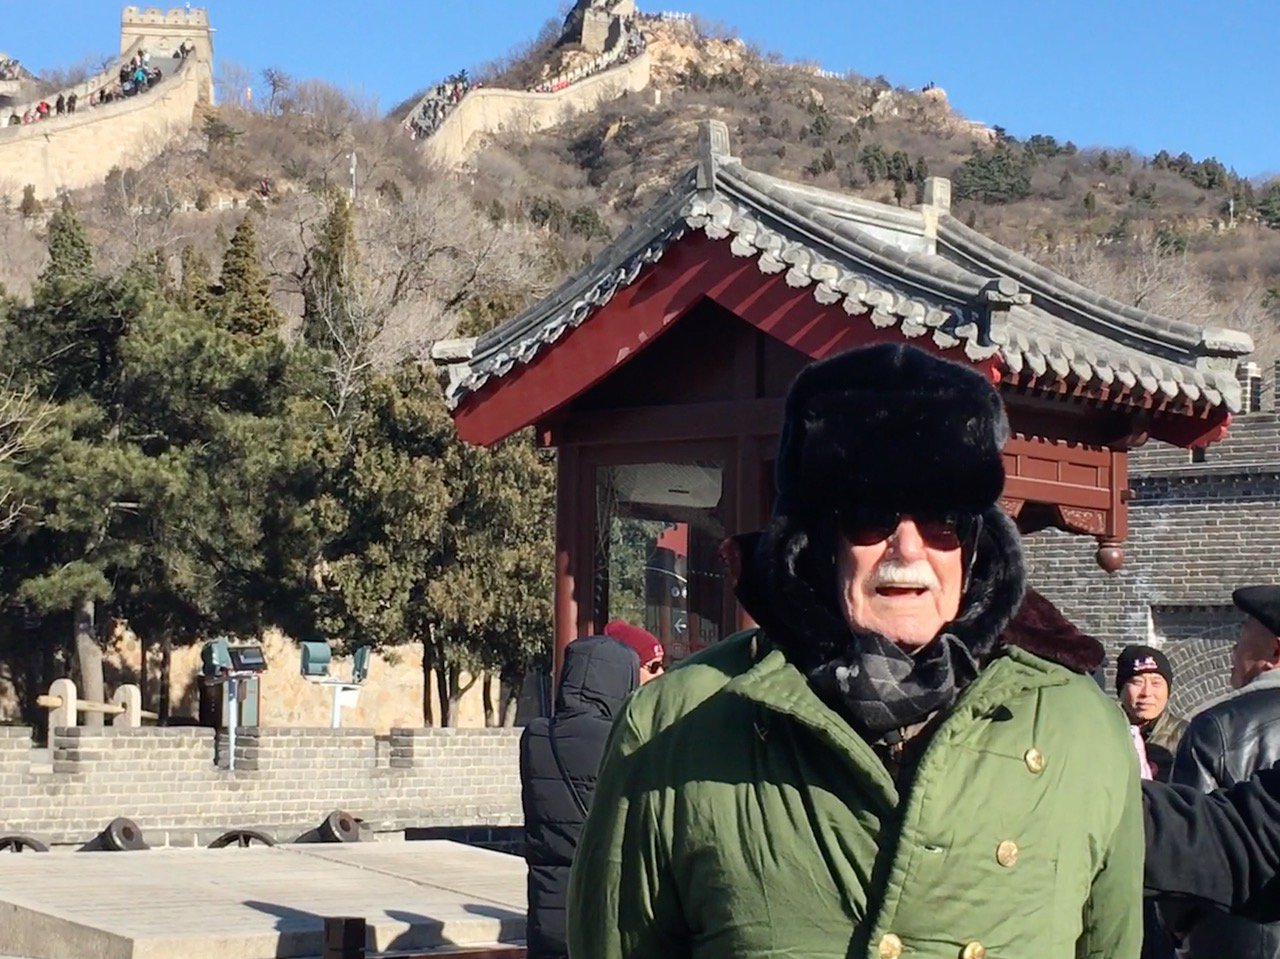 Greetings from China's Great Wall! (In person it actually is pretty good, to say the least... 'Nuff Said!) https://t.co/o0YjnYtPtC